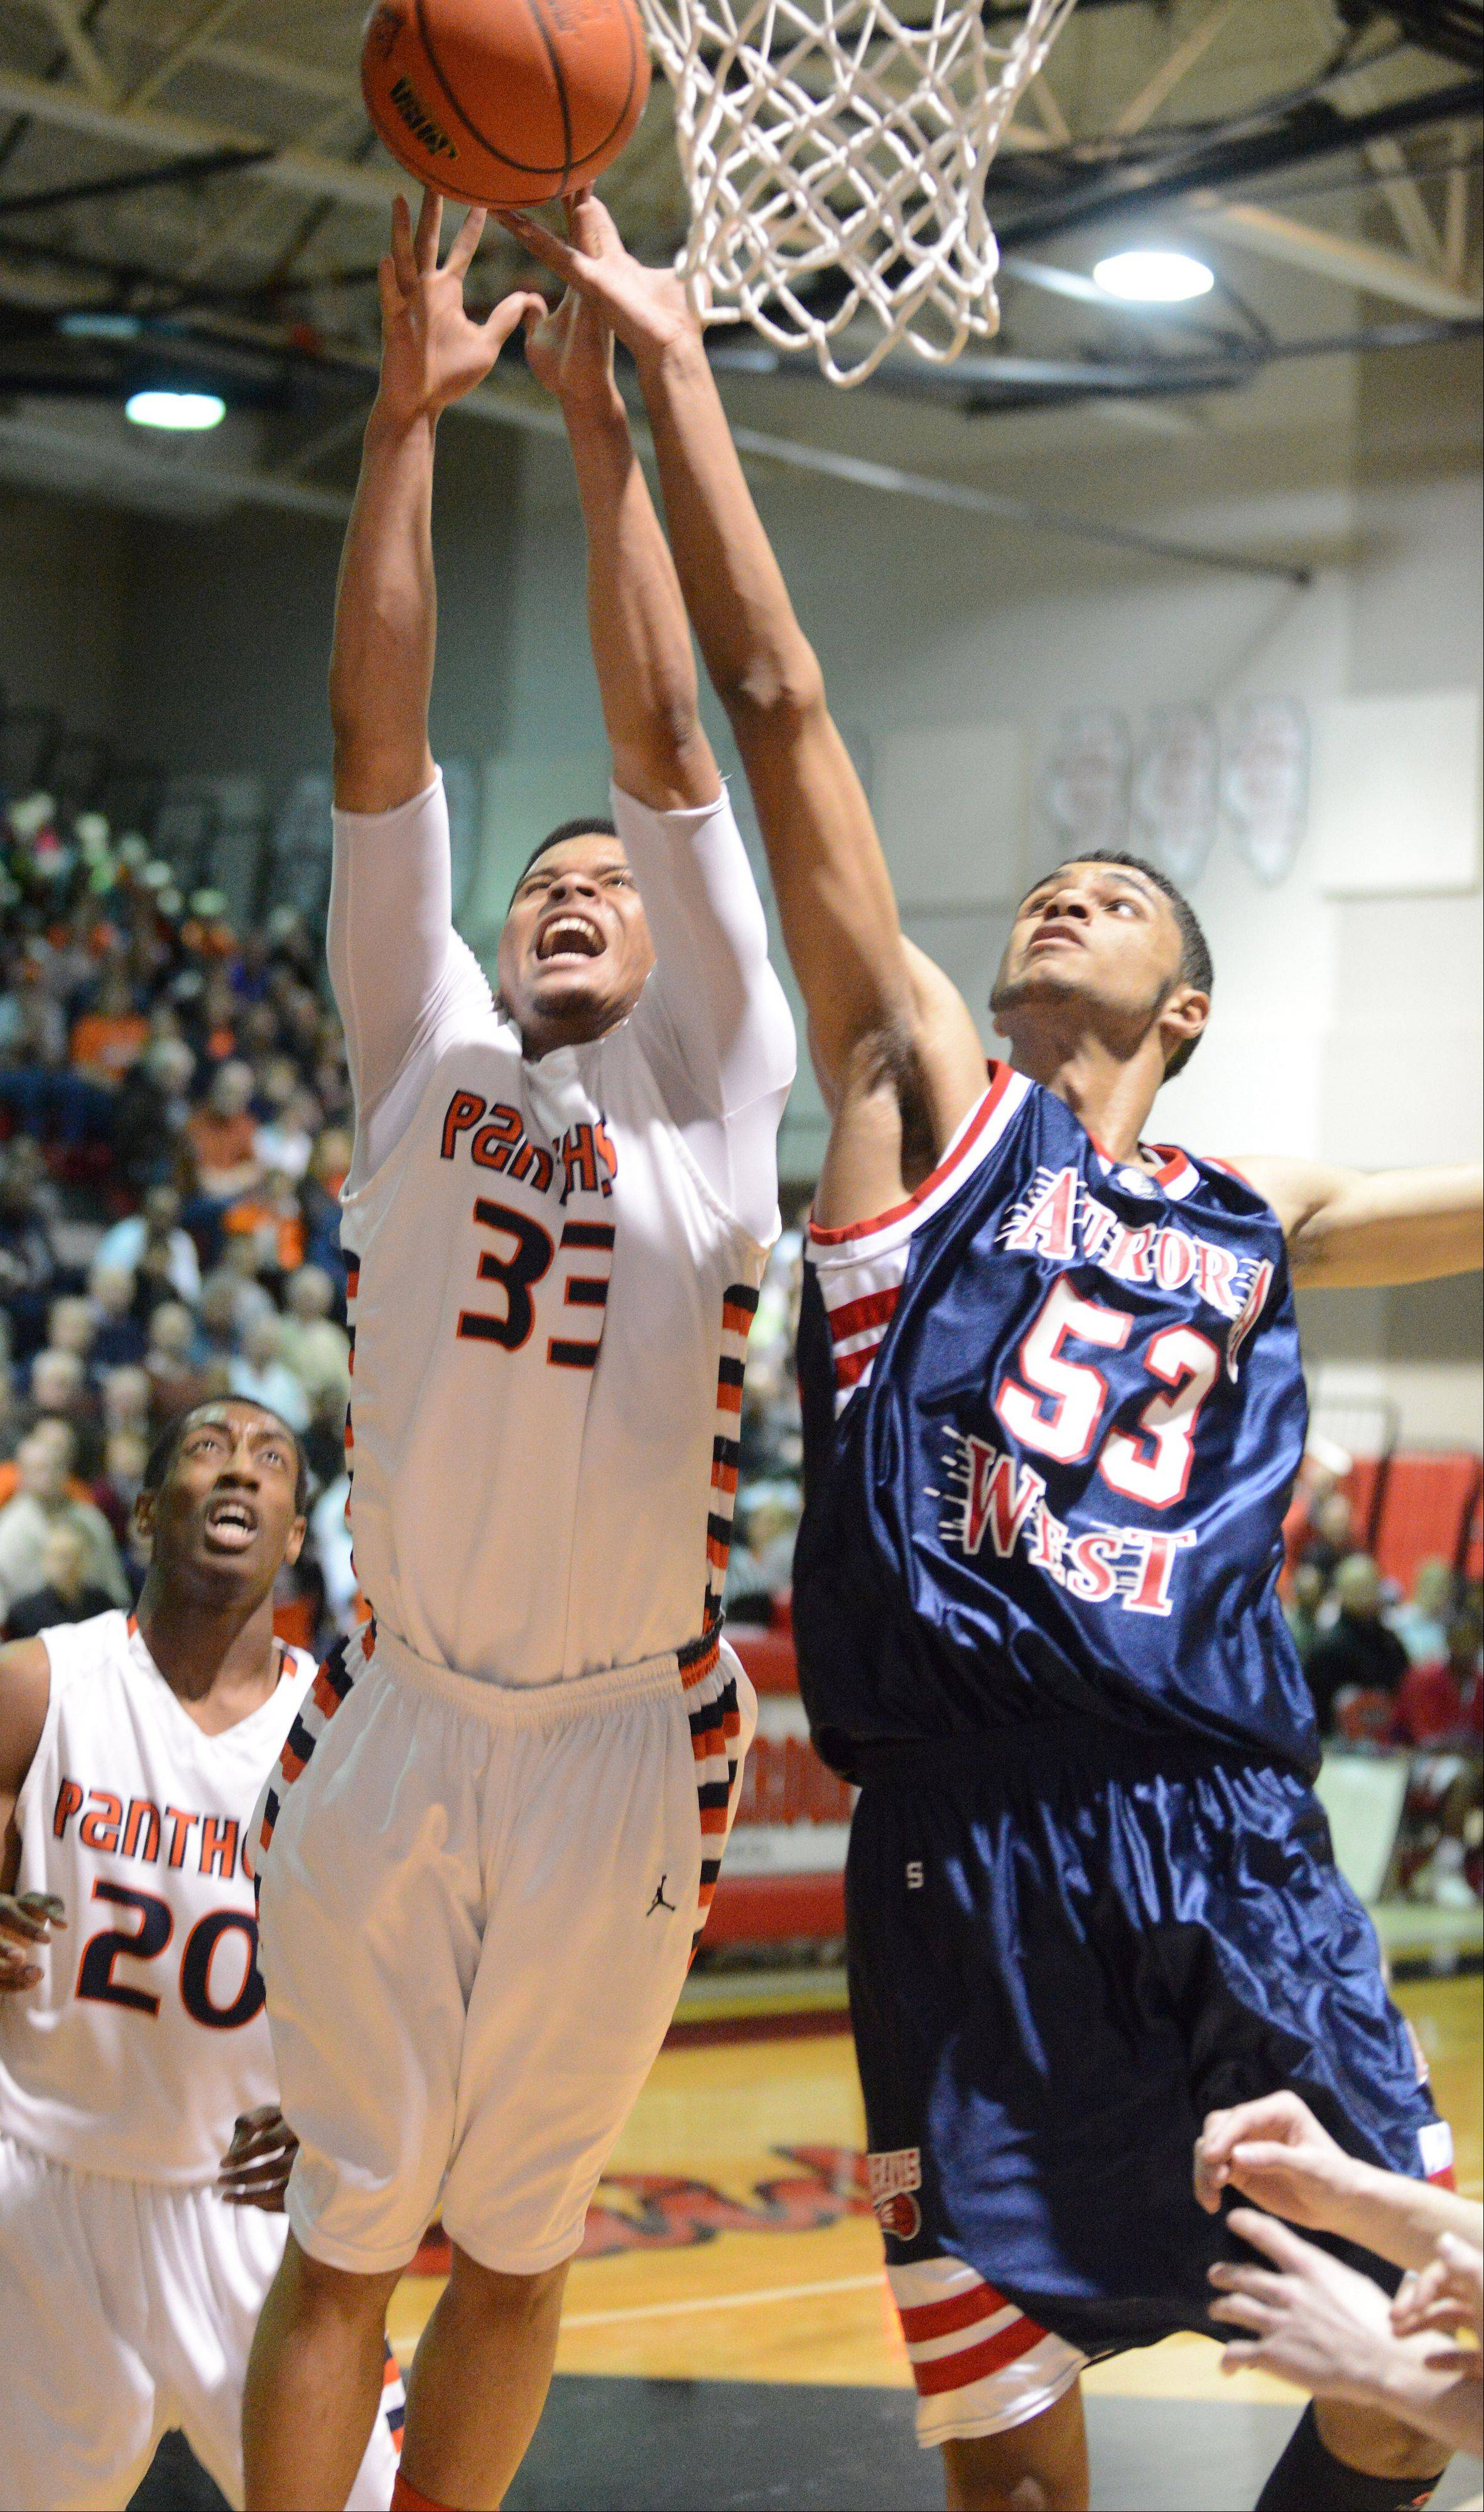 Darion Reddick of Oswego,left, and Joshua Mcauley of West Aurora go for a rebound during the West Aurora vs. Oswego game at the Bolingbrook sectional semifinals Wednesday.